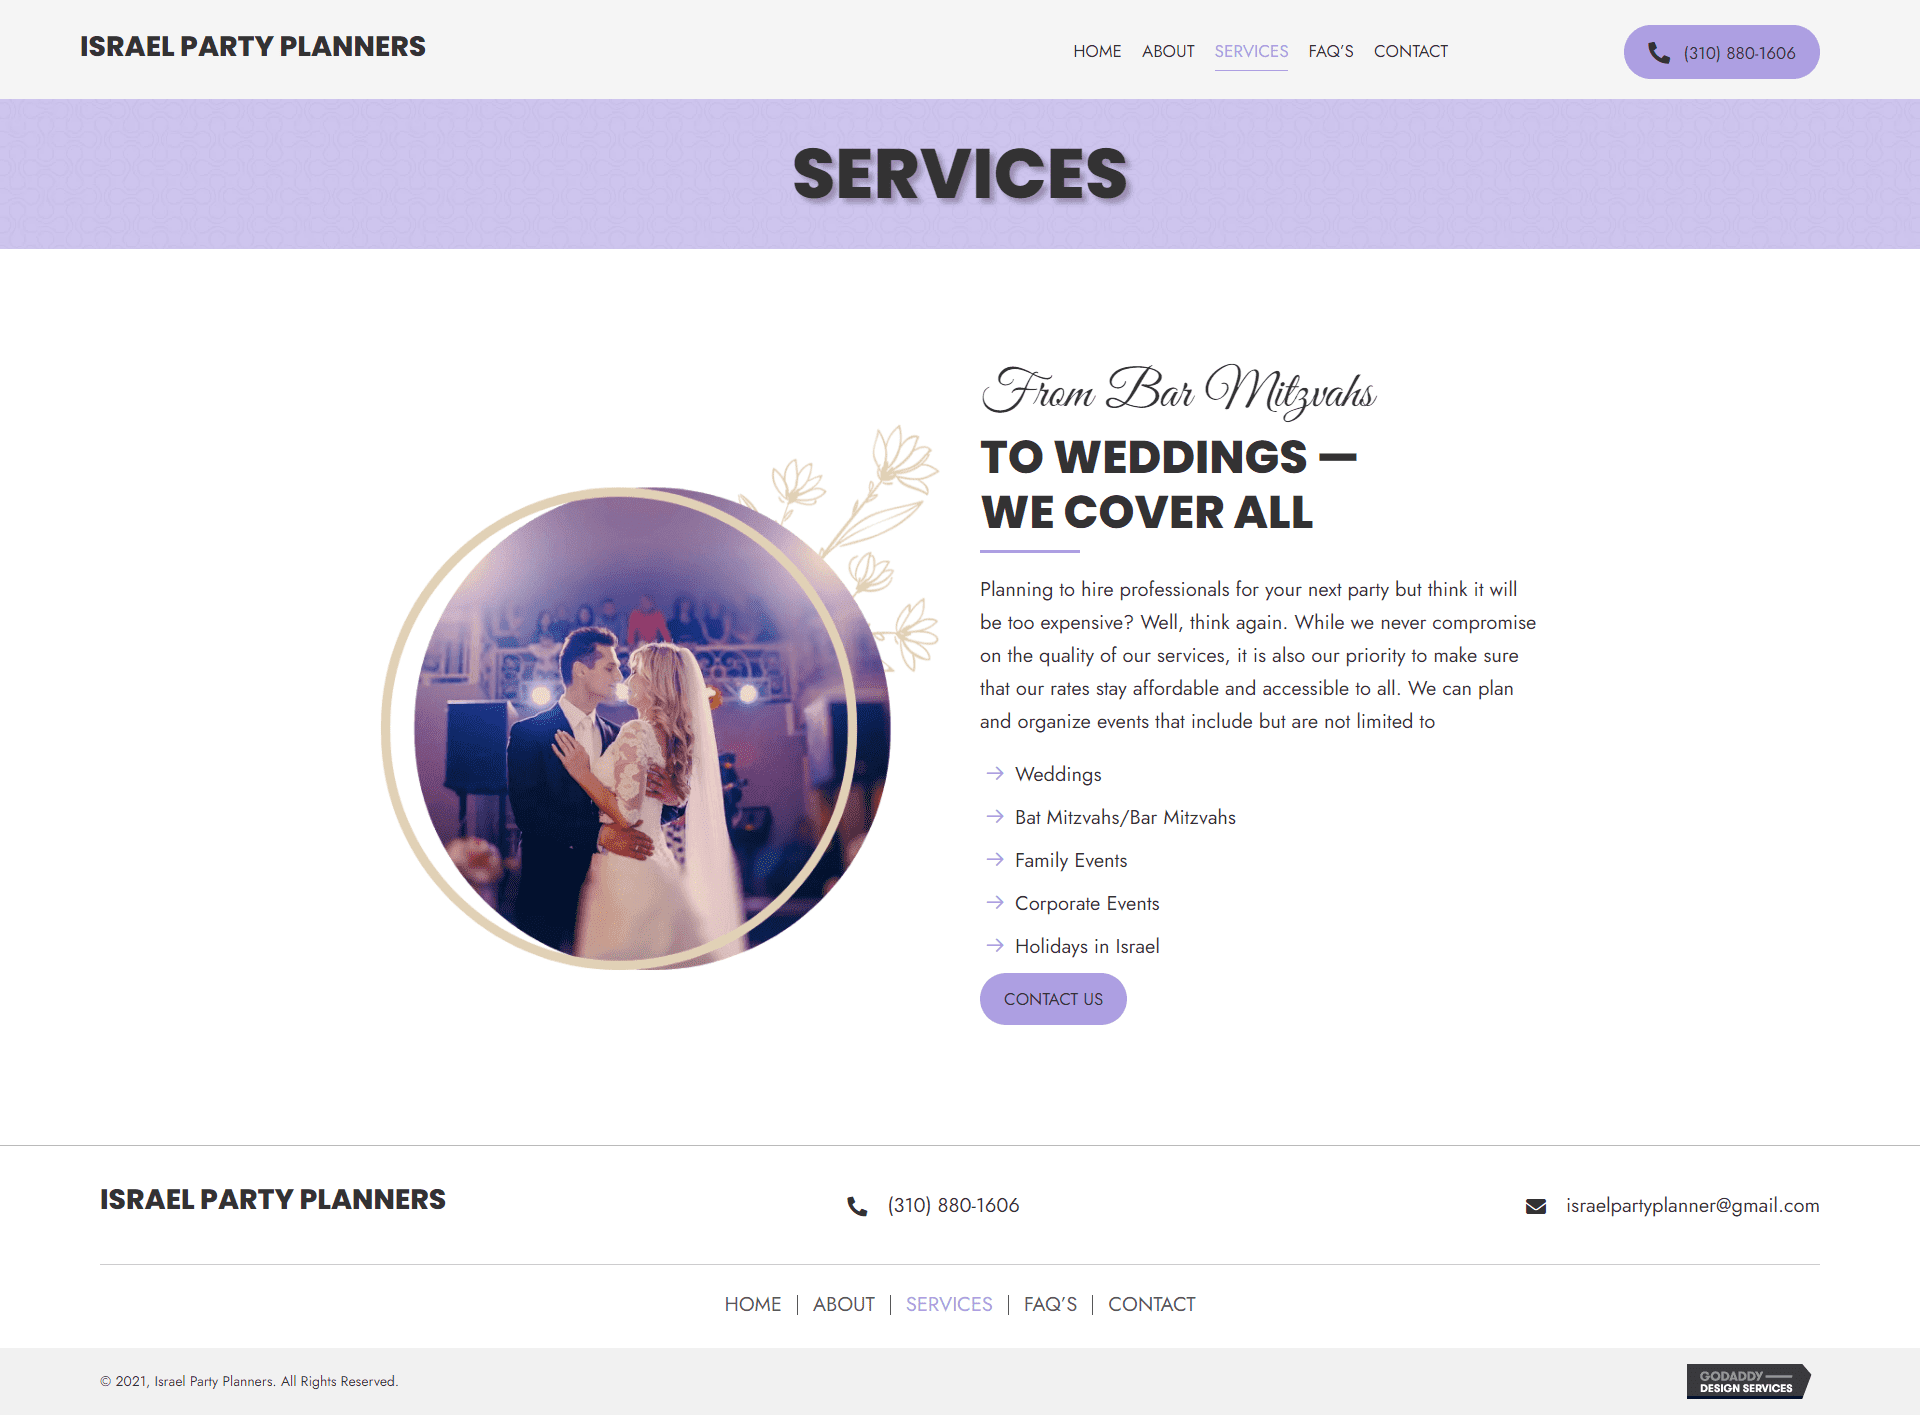 Israel Party Planners Services